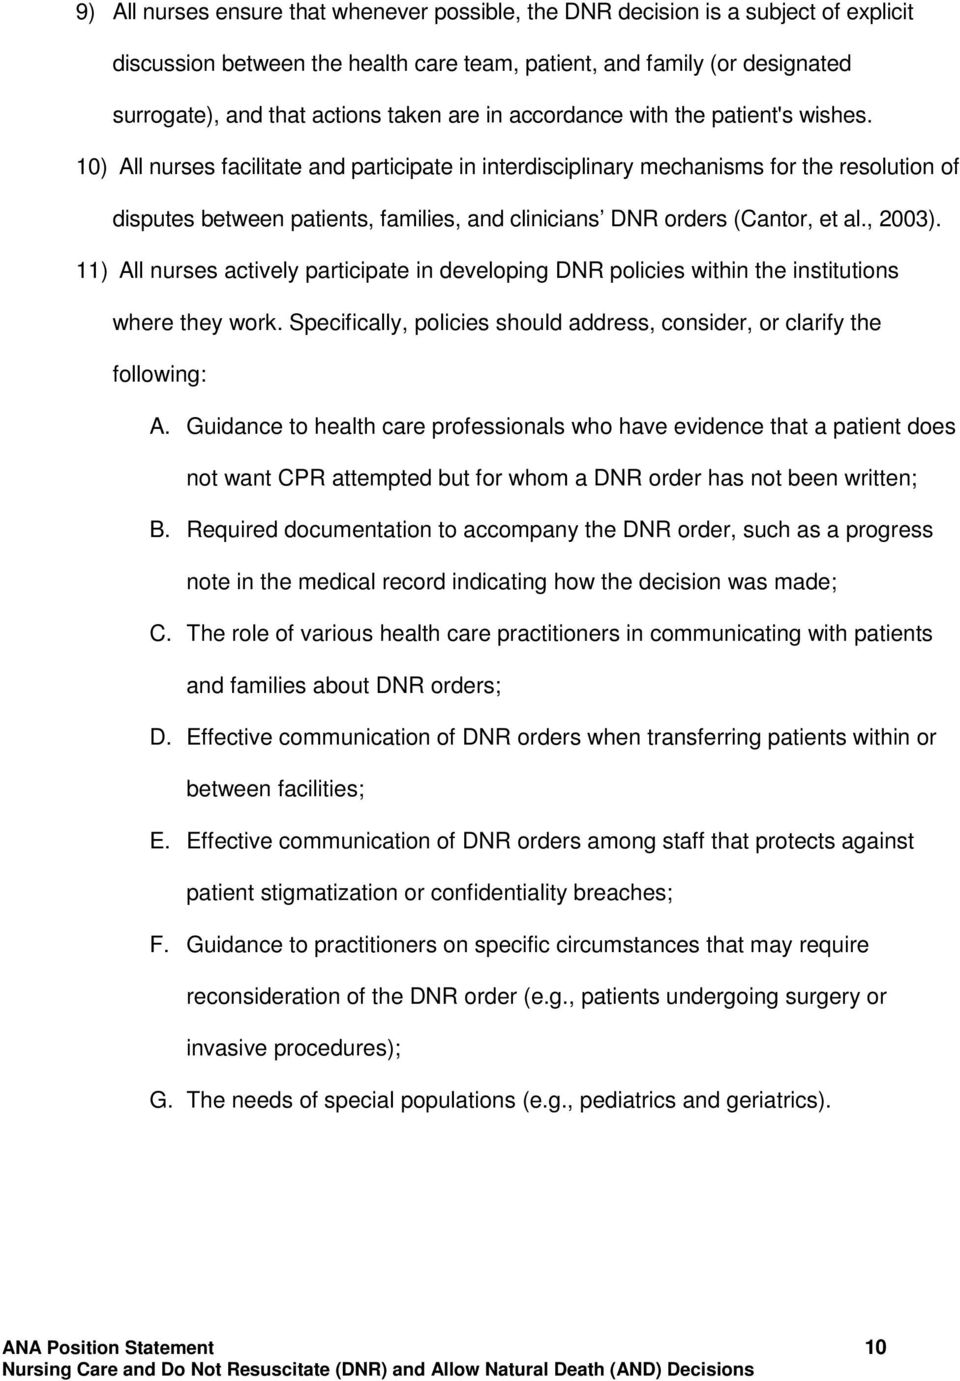 10) All nurses facilitate and participate in interdisciplinary mechanisms for the resolution of disputes between patients, families, and clinicians DNR orders (Cantor, et al., 2003).